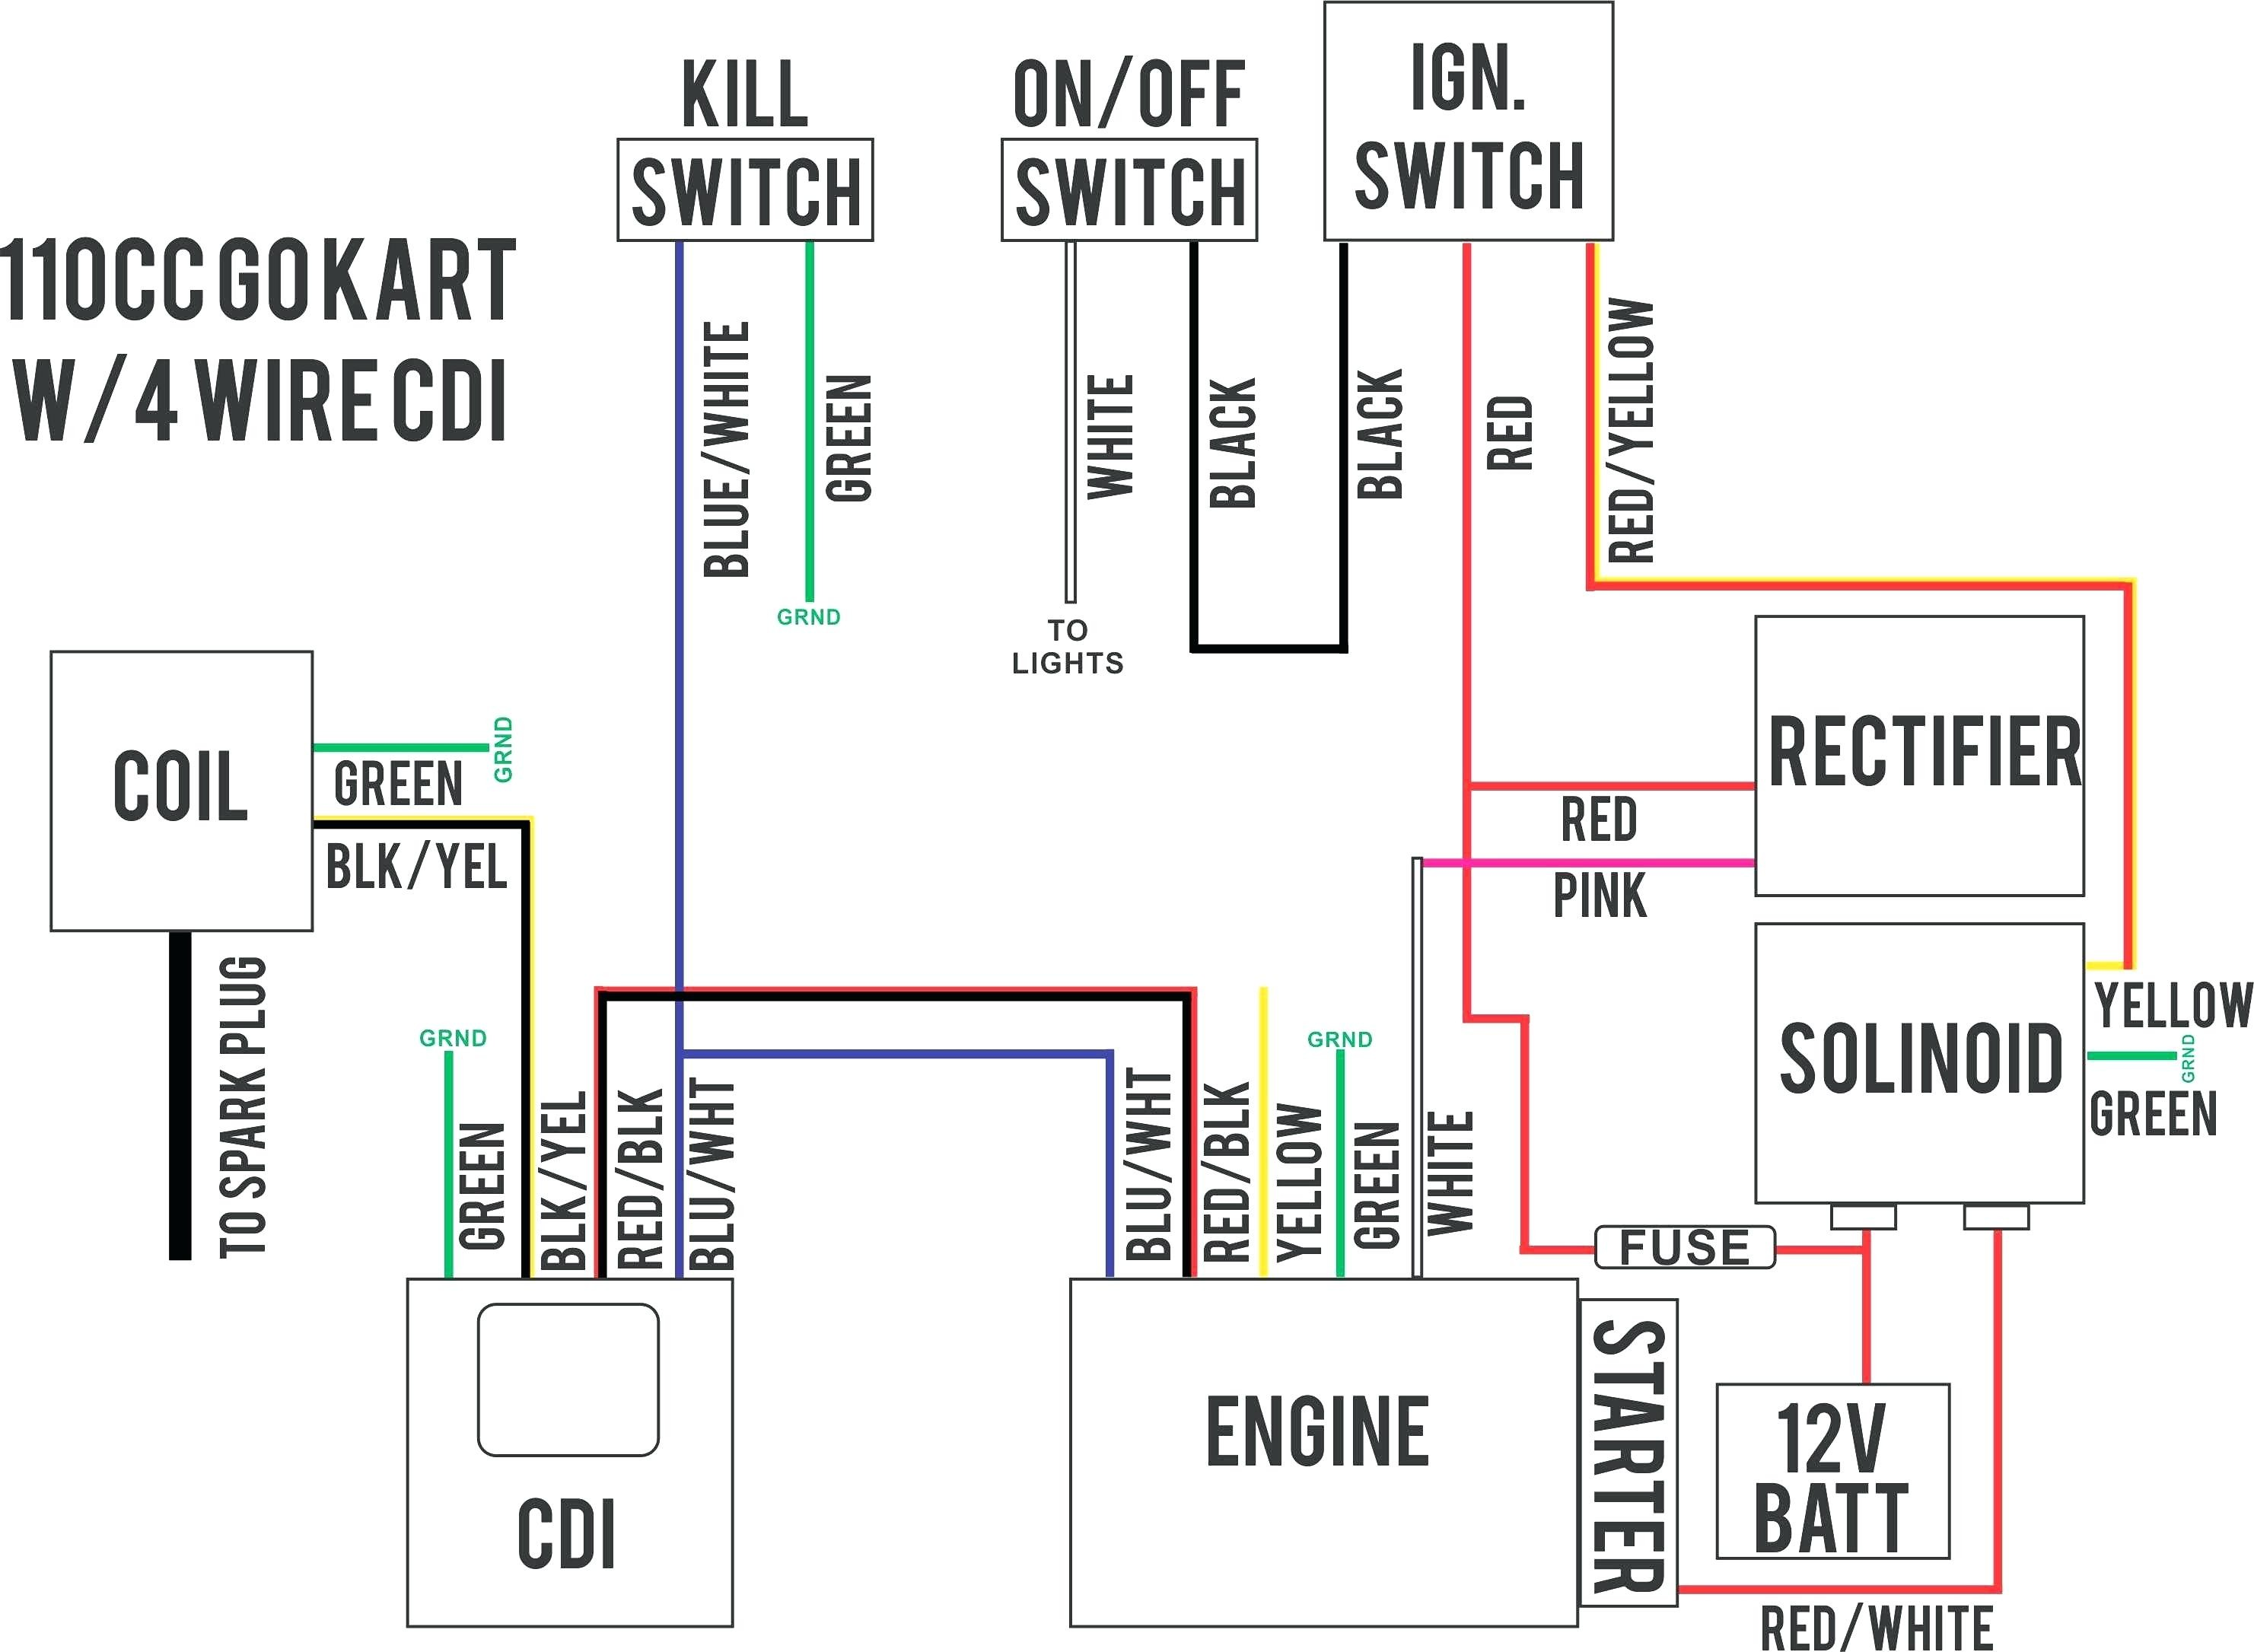 Cable Tv Wiring Diagrams Cable Tv Wiring Diagram Aerial for Connectors Cat 5 Plug Of Cable Tv Wiring Diagrams